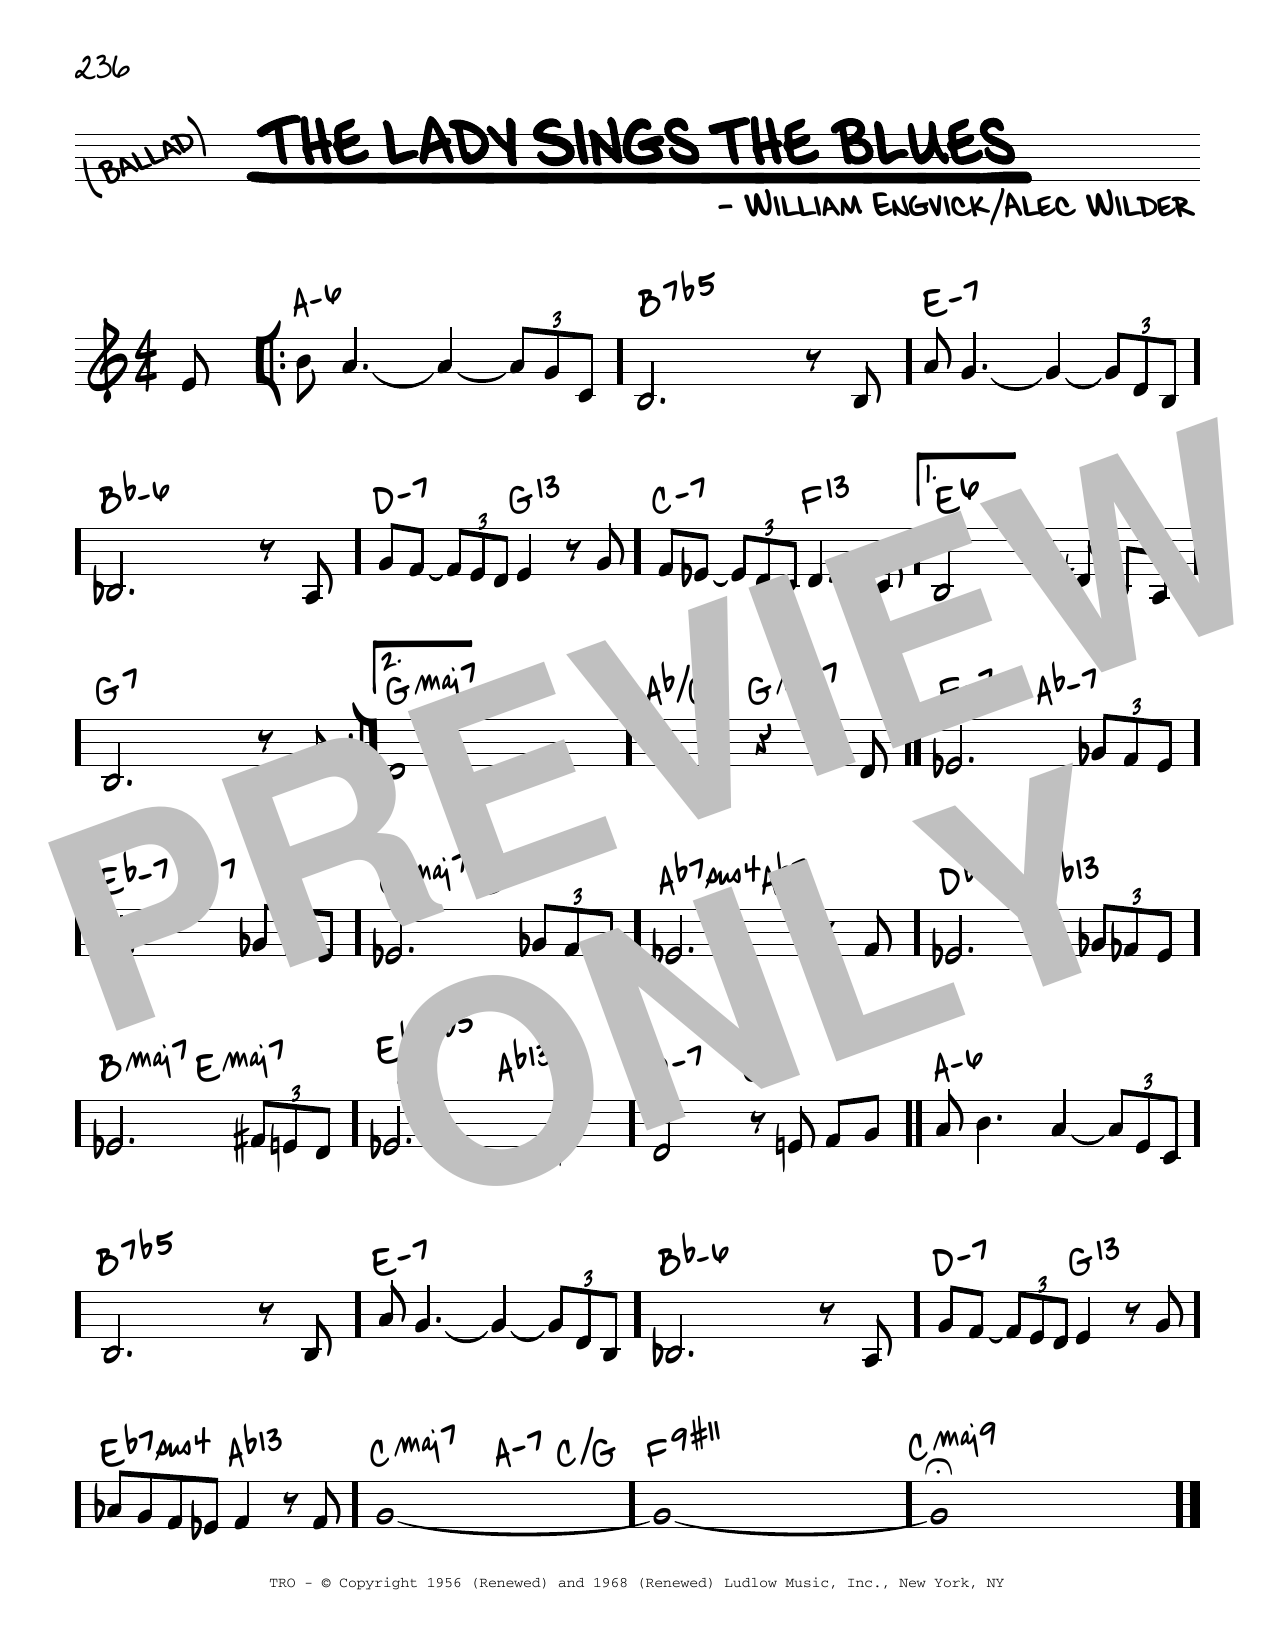 William Engvick The Lady Sings The Blues sheet music notes and chords. Download Printable PDF.